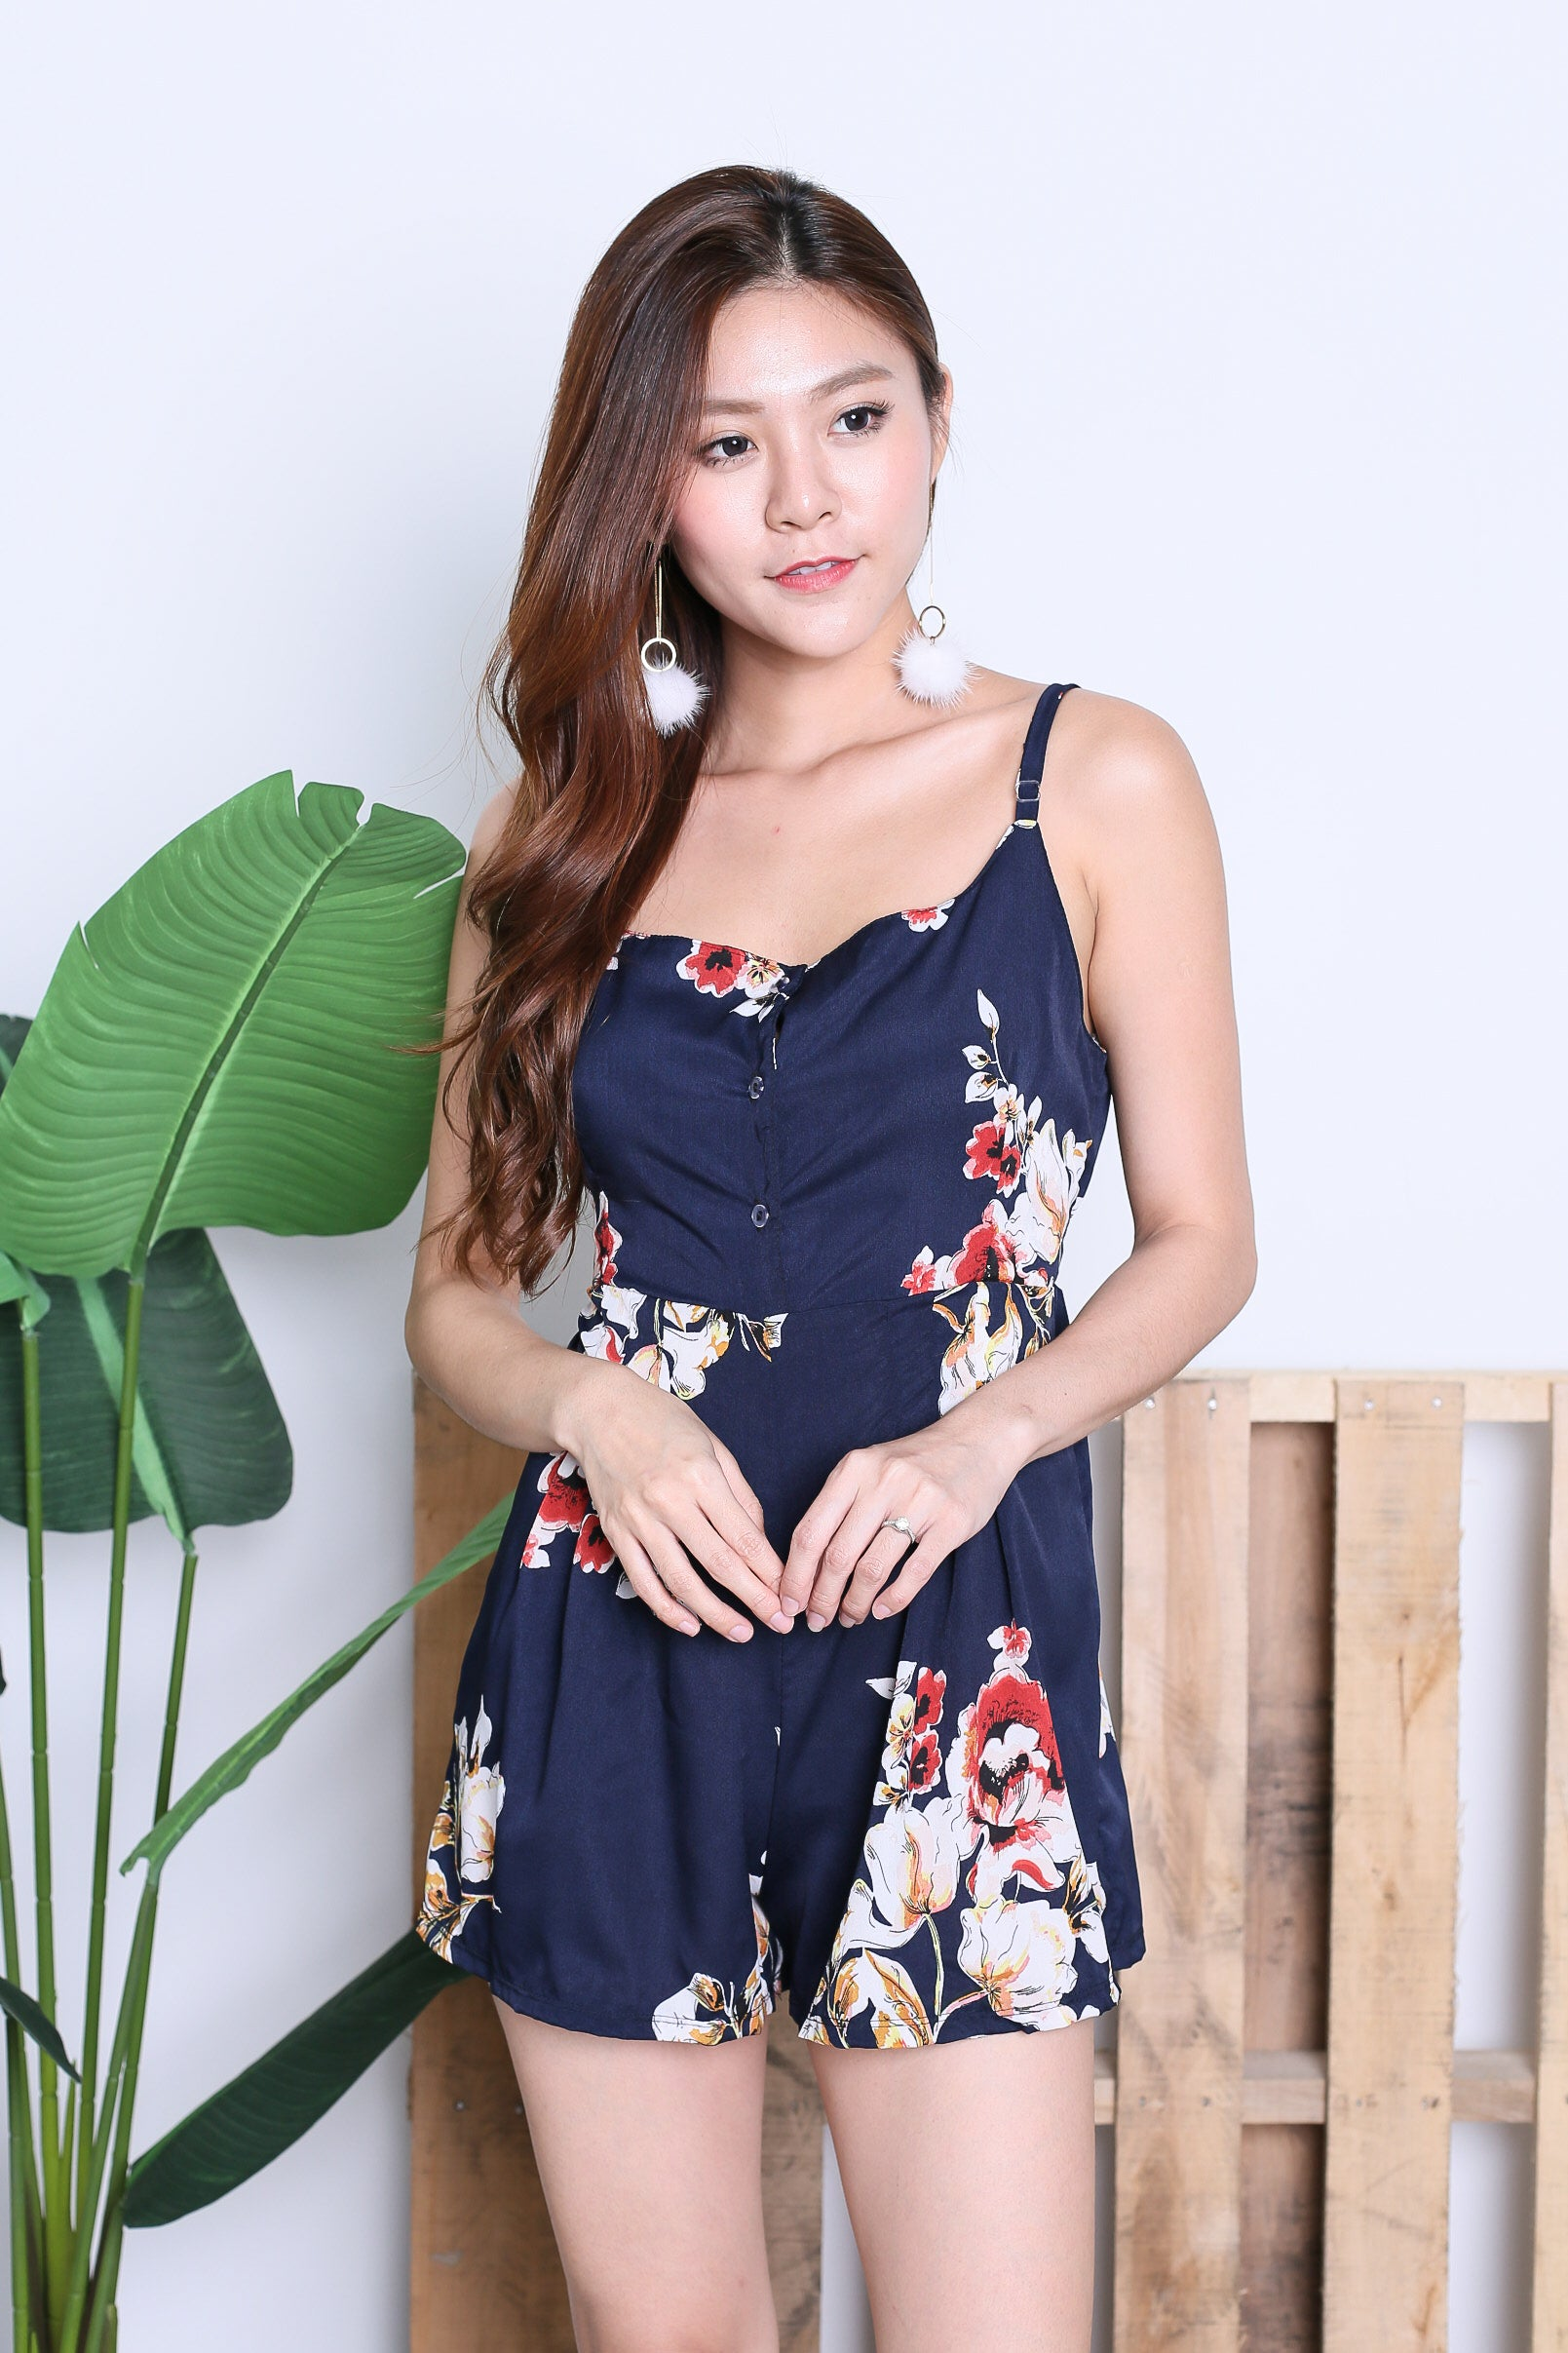 CHRISSY FLORAL ROMPER IN NAVY